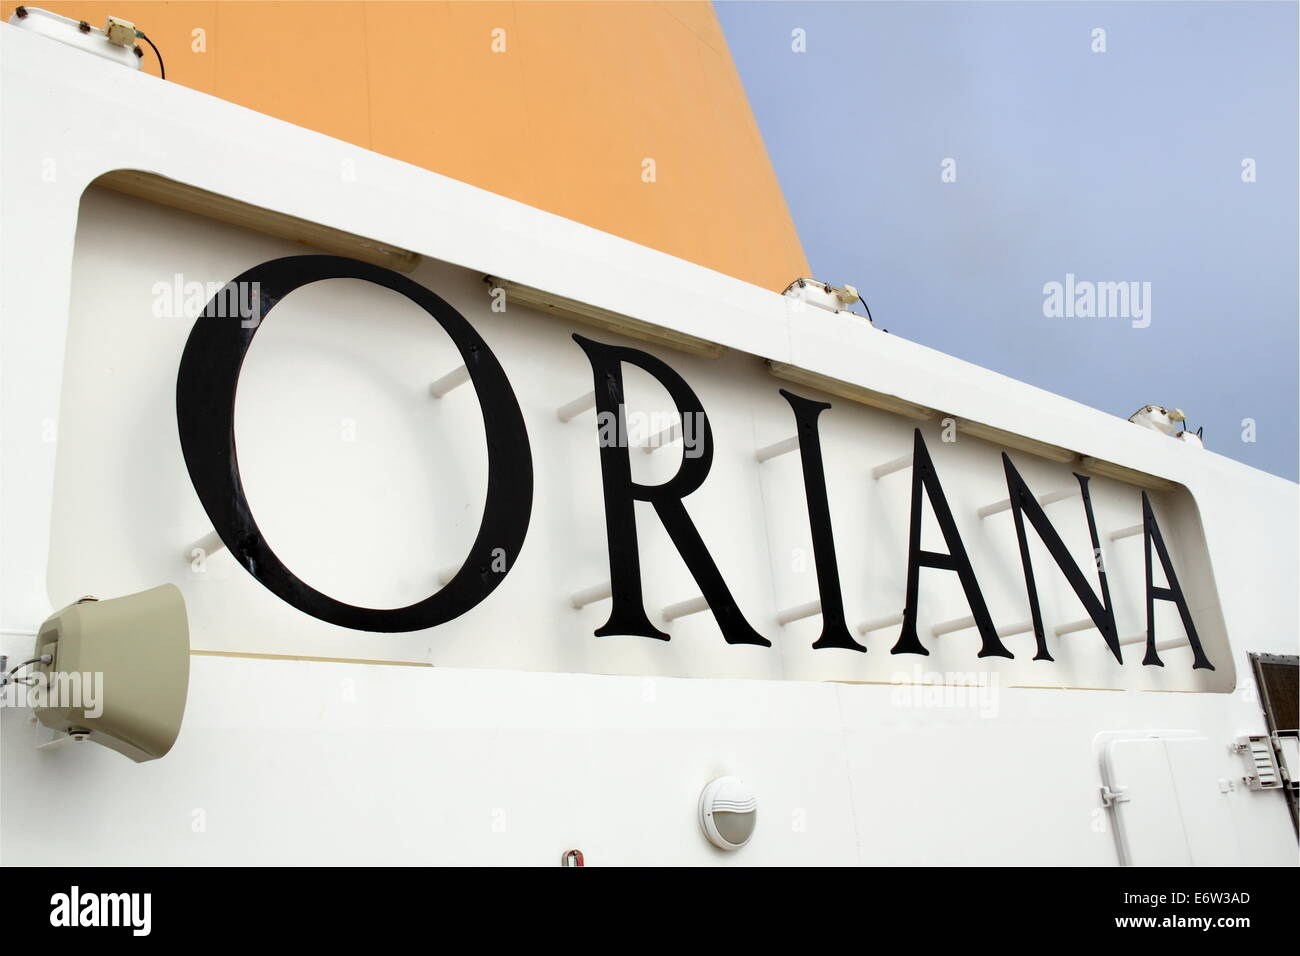 Sign below funnel, P&O Cruises Oriana, Norway 2014 - Stock Image